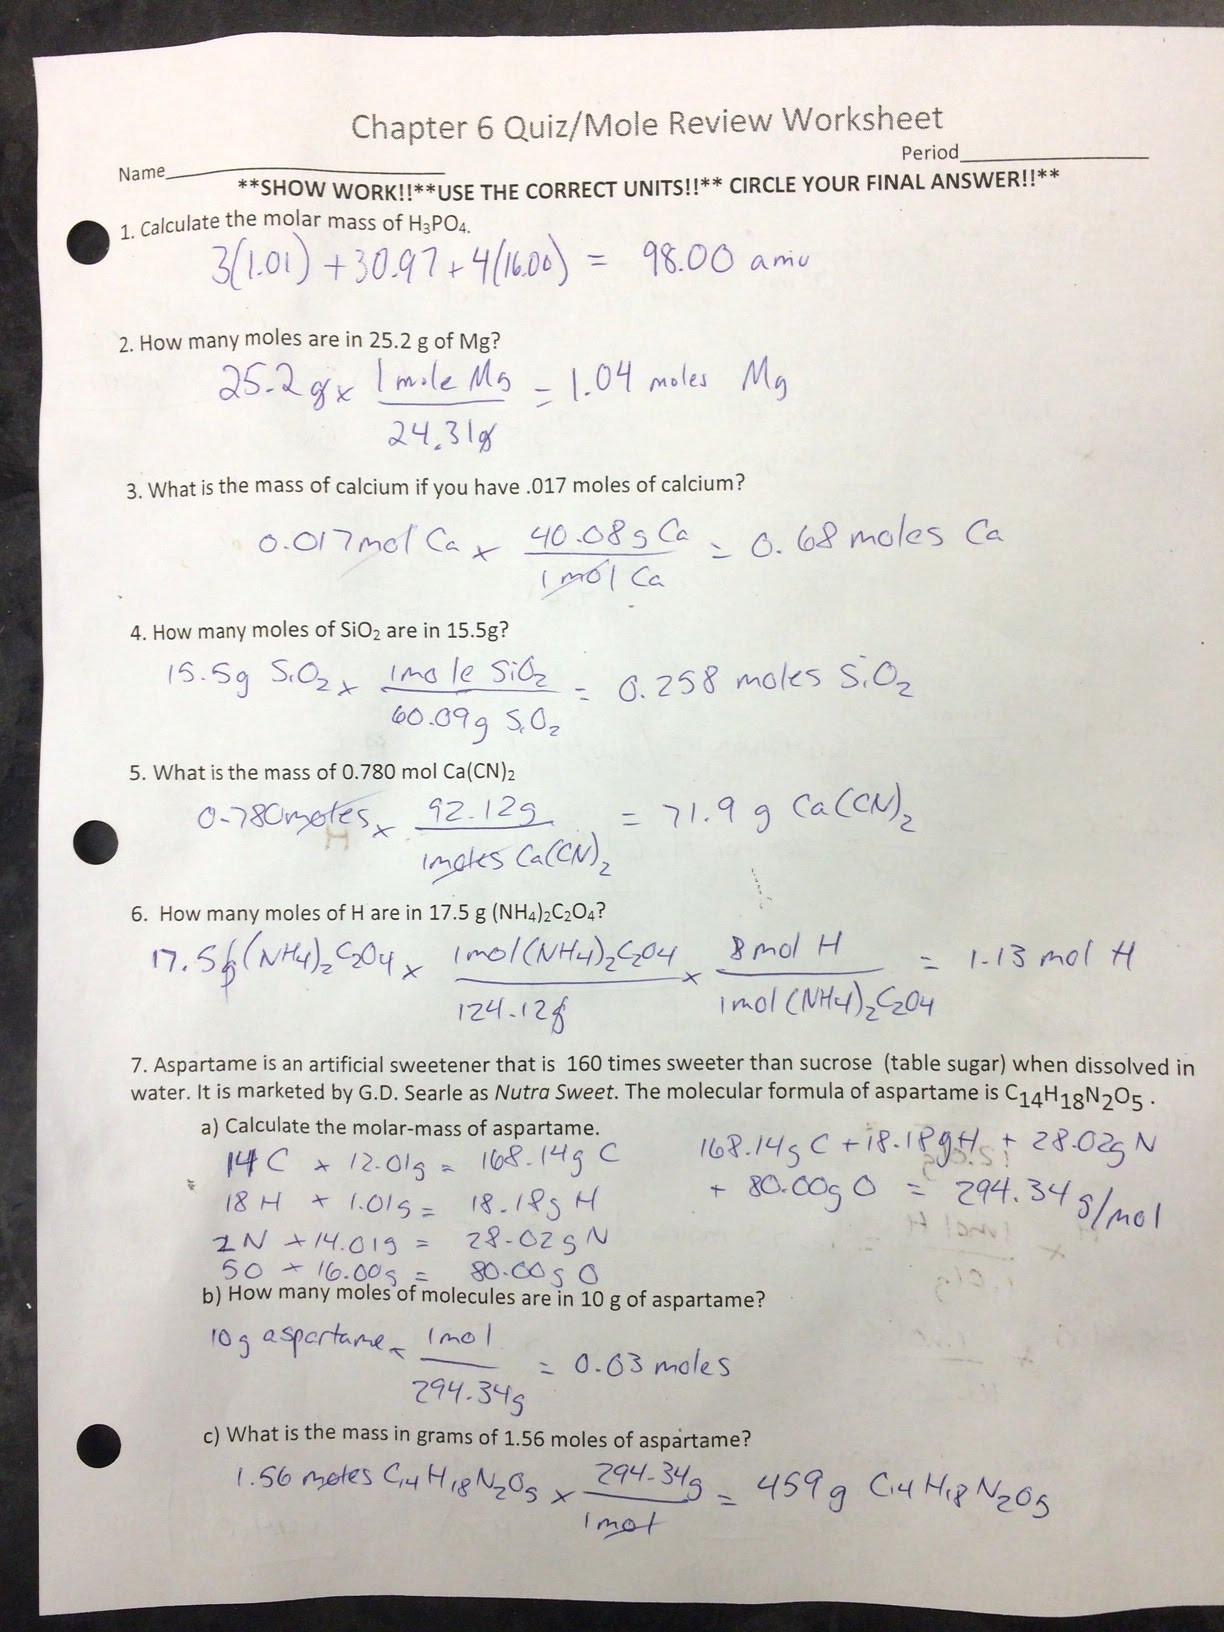 Chemistry Review Worksheet Answers assignments Labs Erhs Chemistry with Mr Stagg